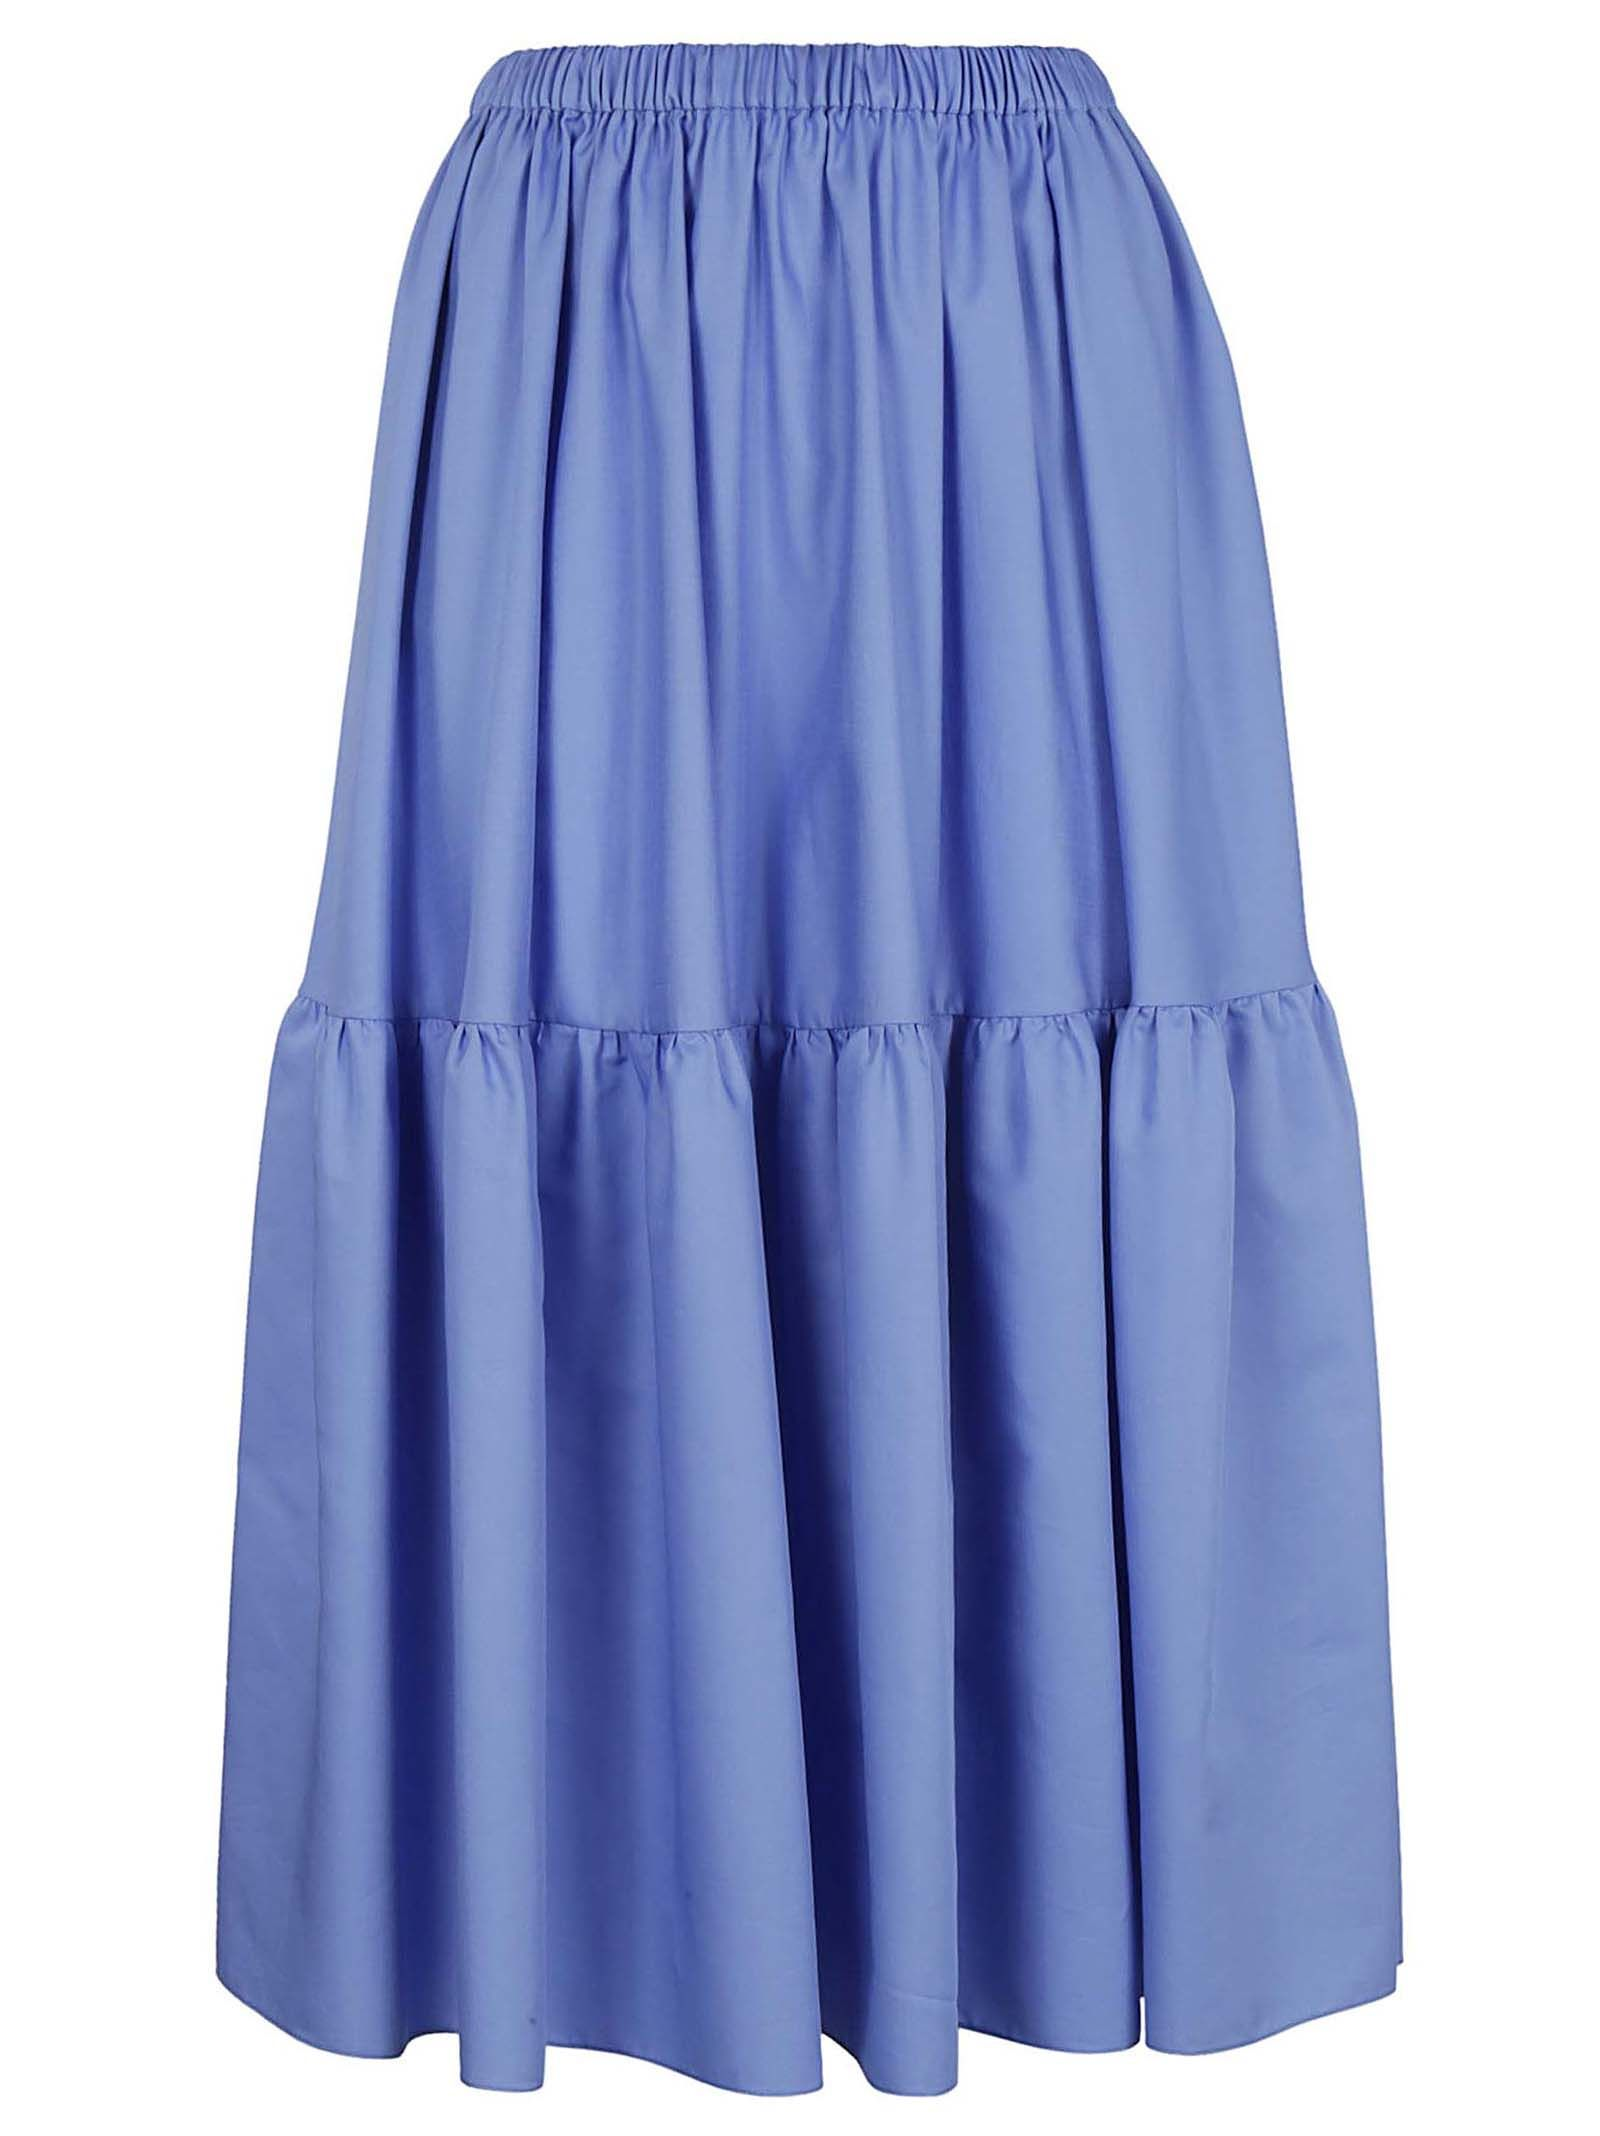 STELLA MCCARTNEY ELASTICATED WAIST SKIRT